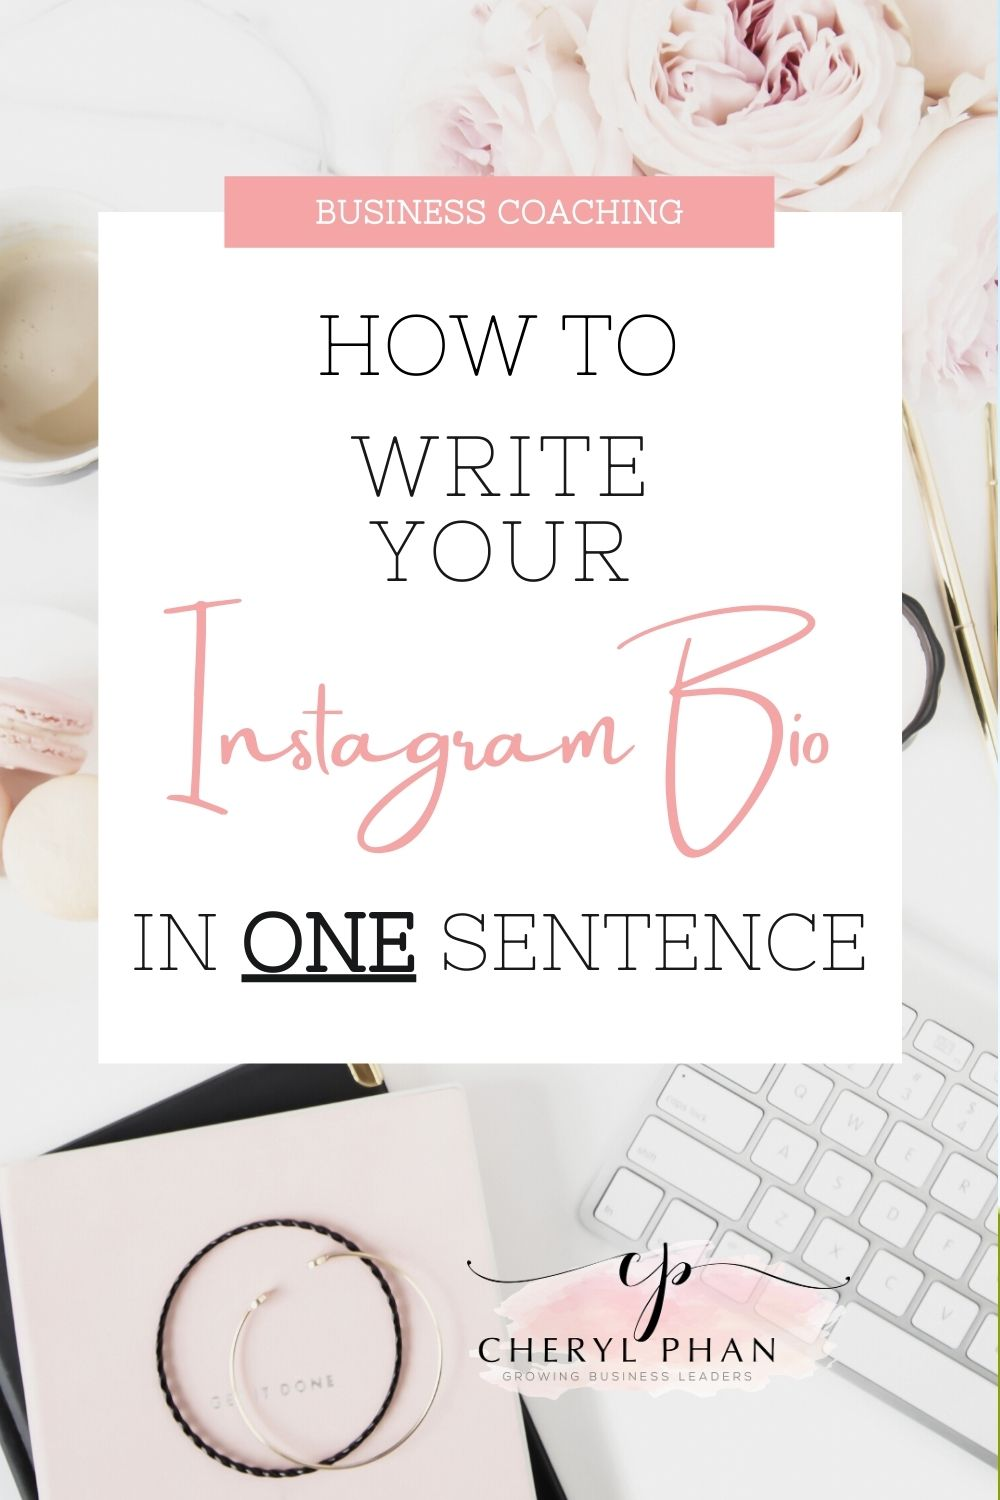 How to Write Your Instagram Profile in One Sentence by Cheryl Phan